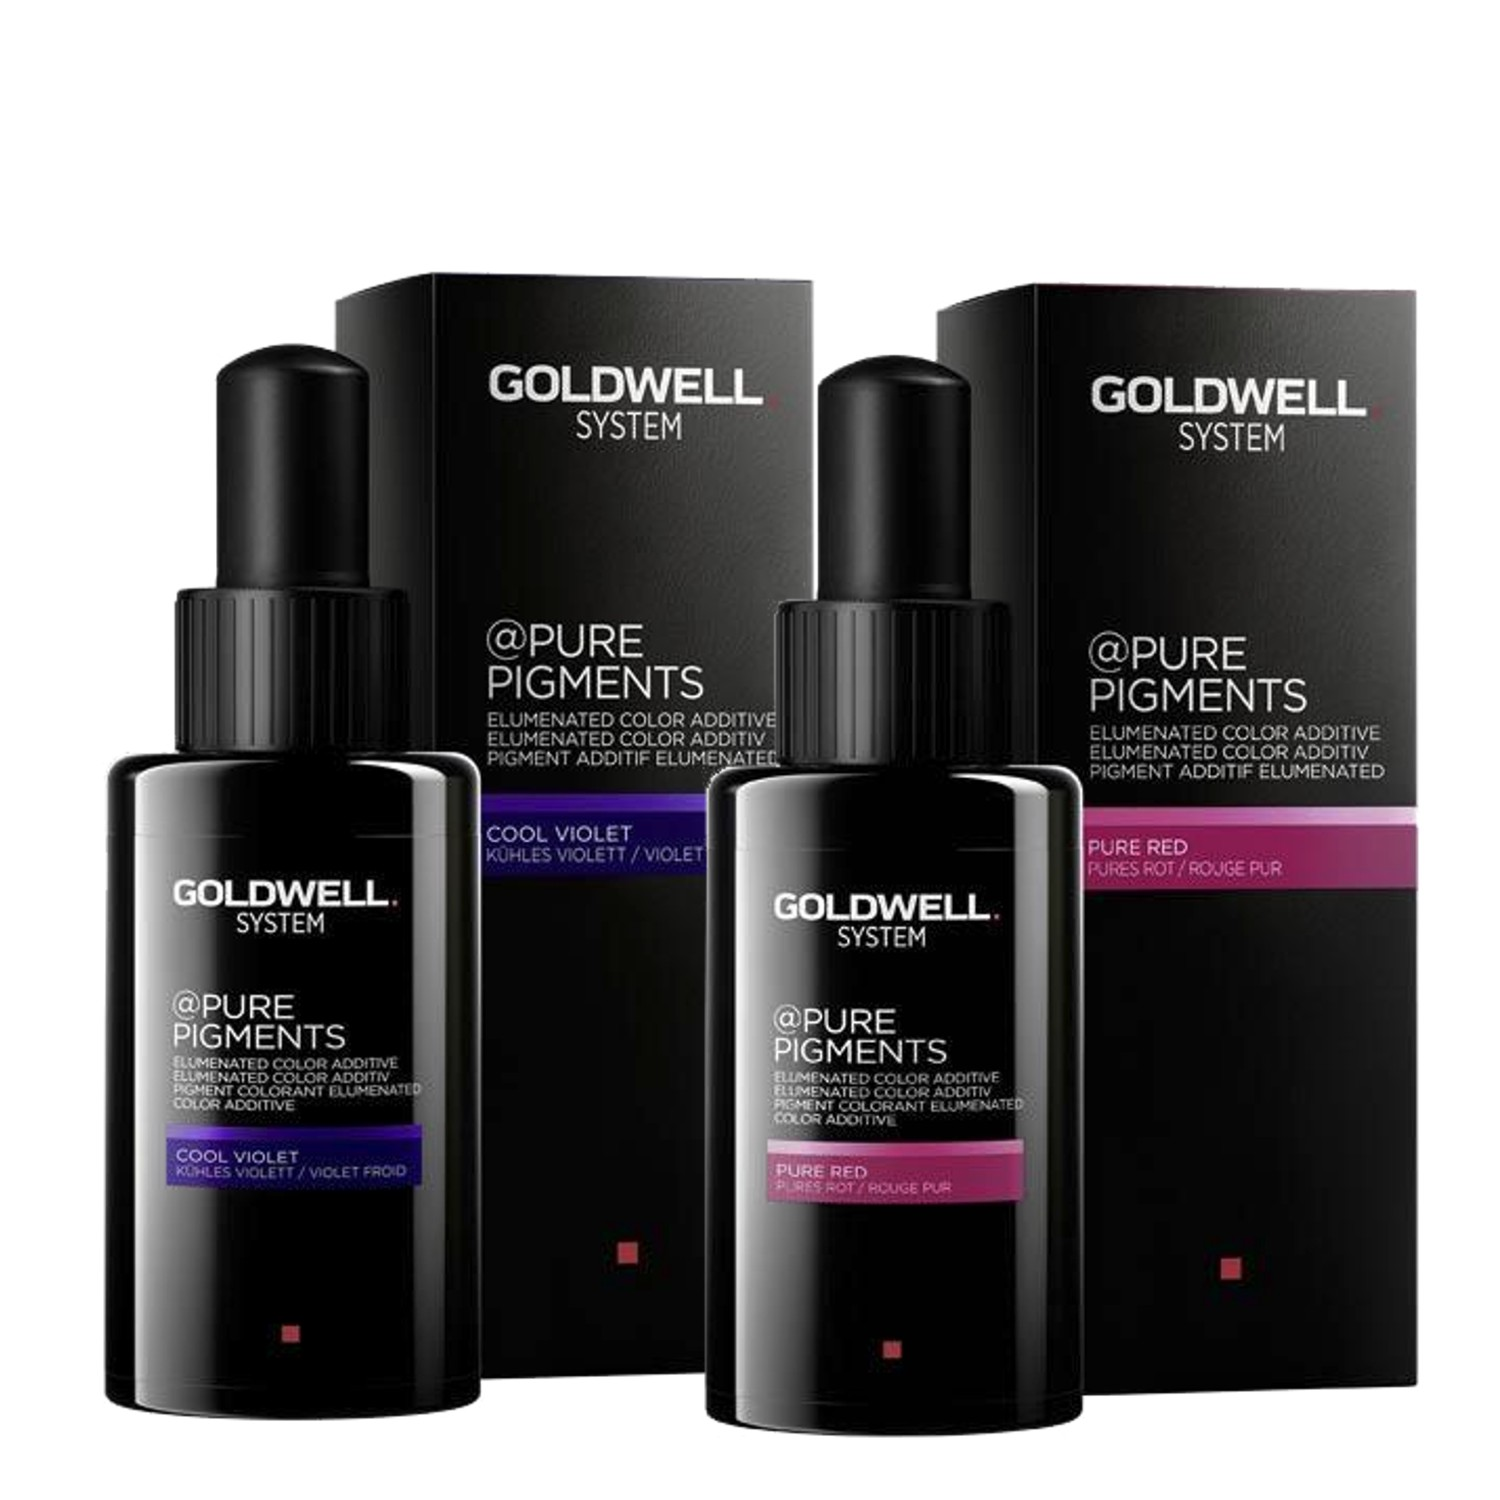 GOLDWELL System @Pure Pigments 50 ml